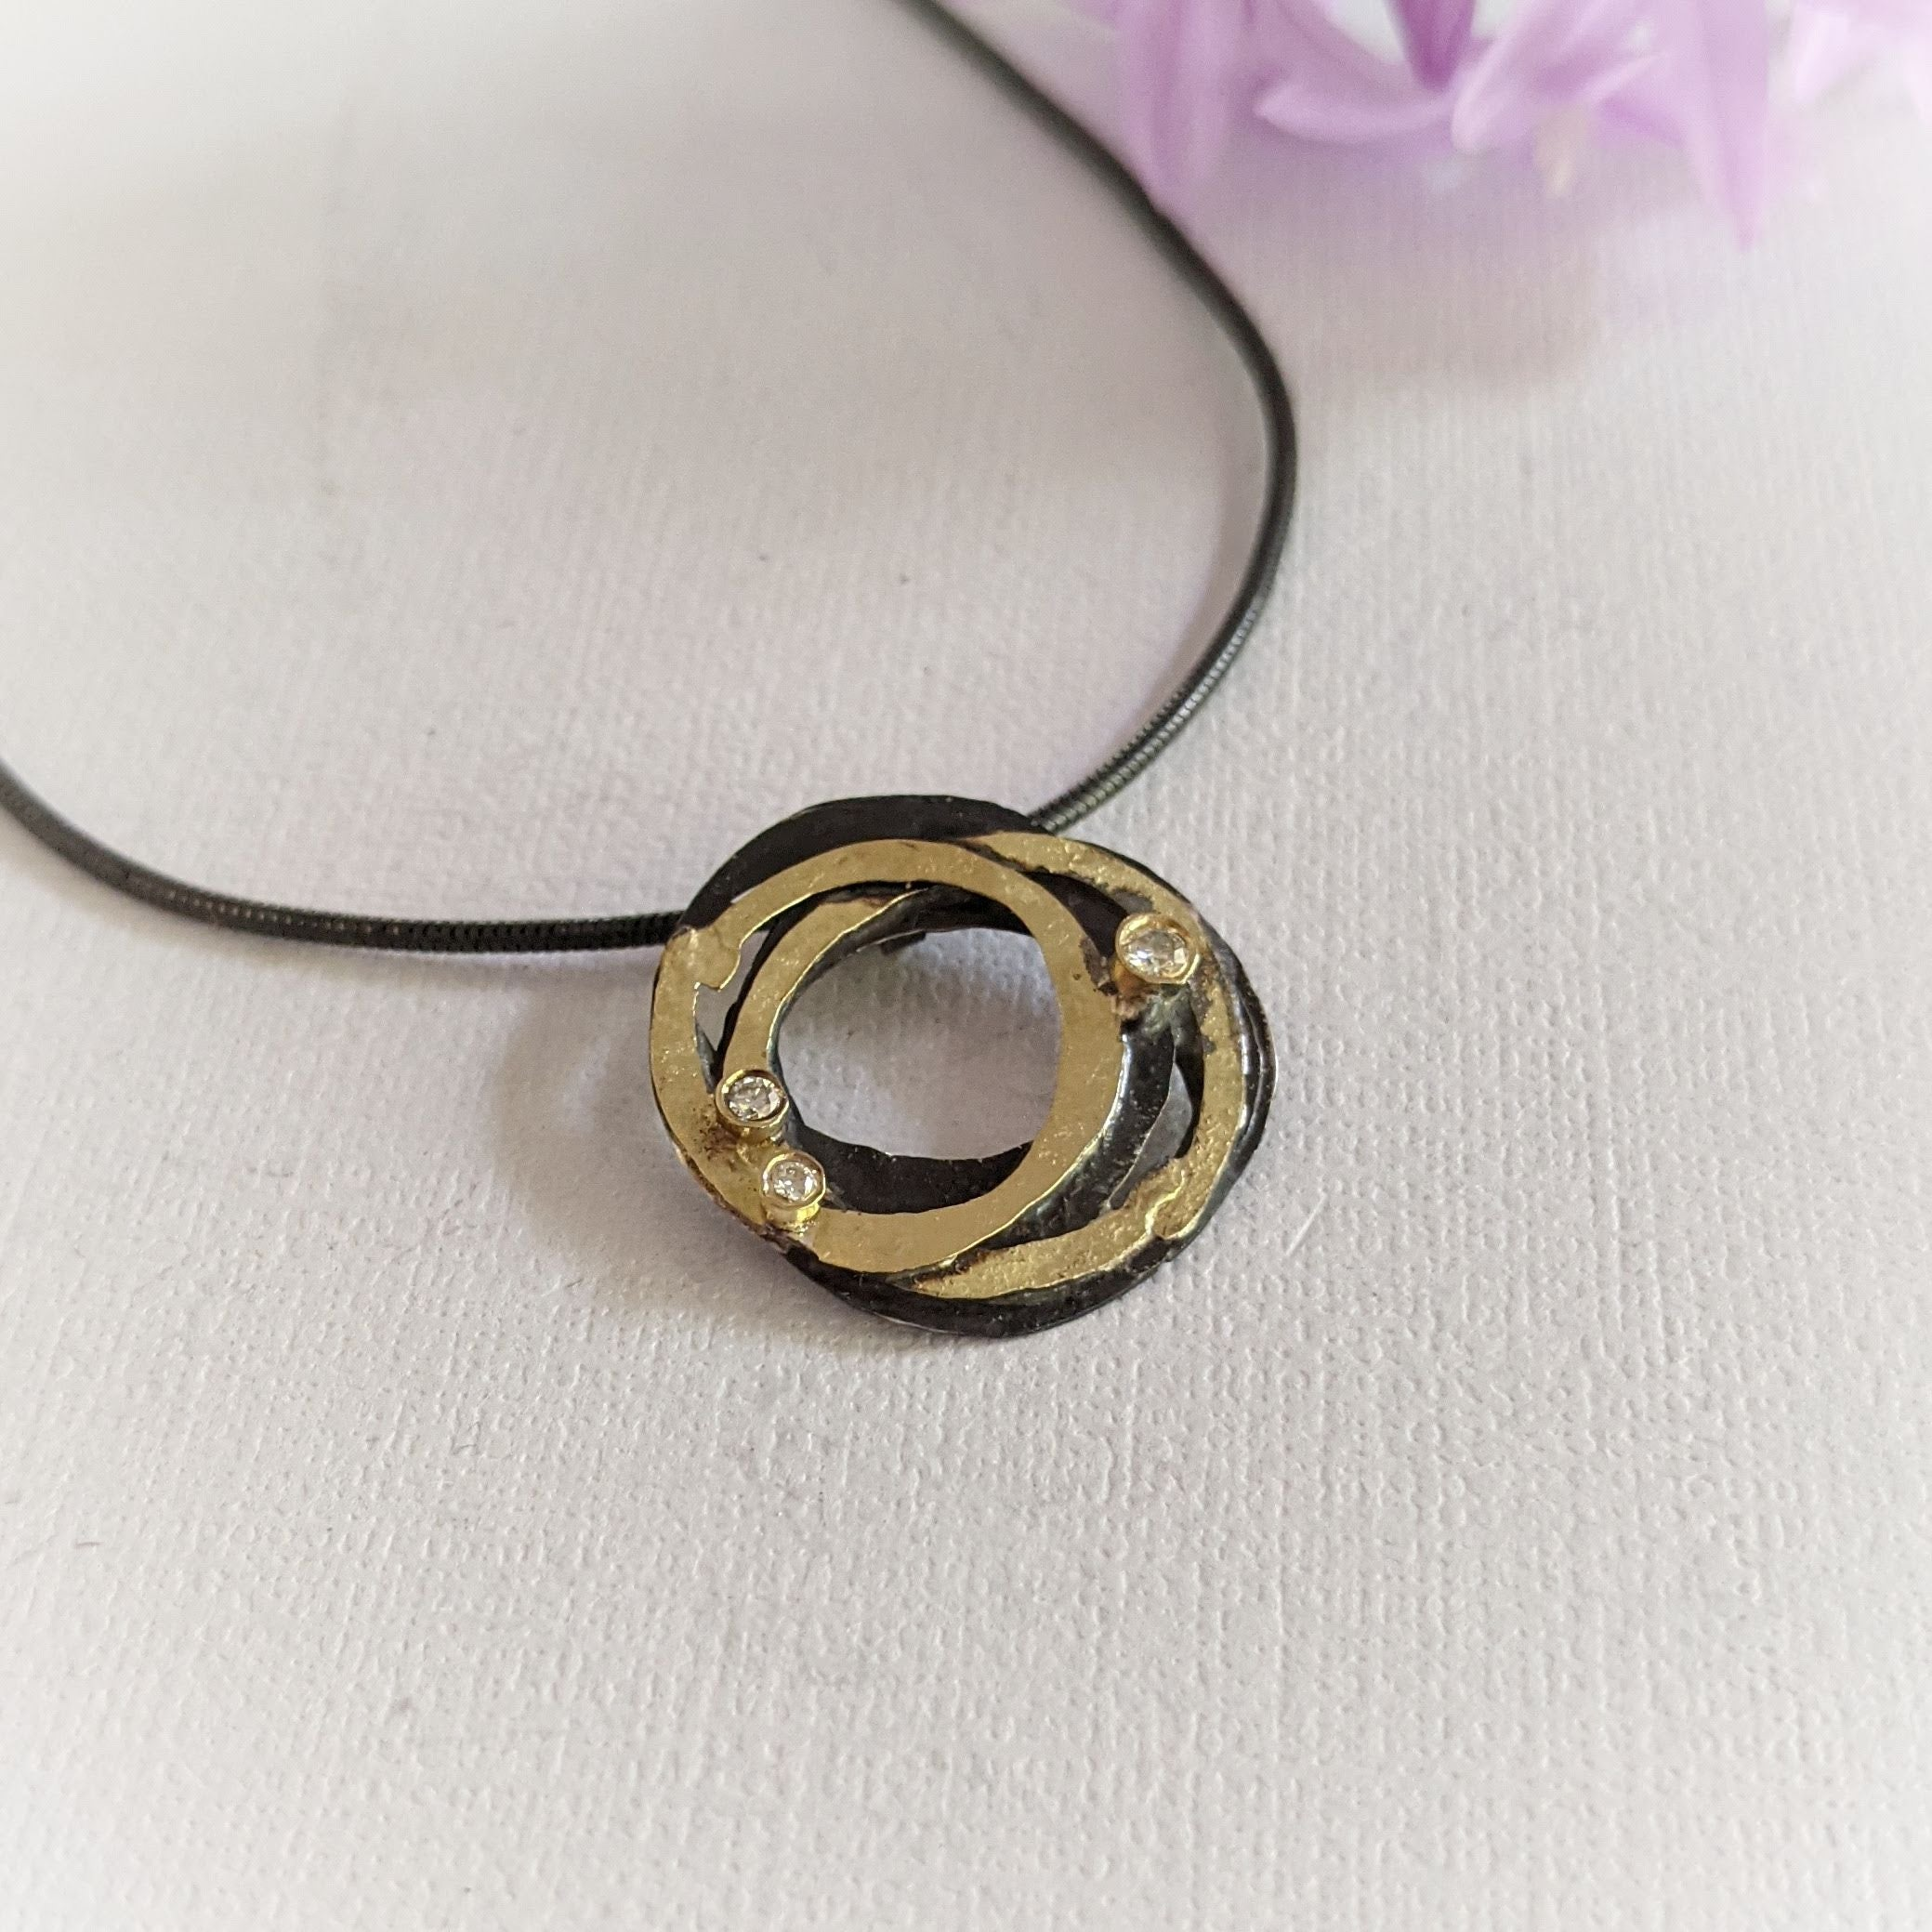 Oxidized Silver and Gold Wrap Pendant with 3 Various Size Diamonds